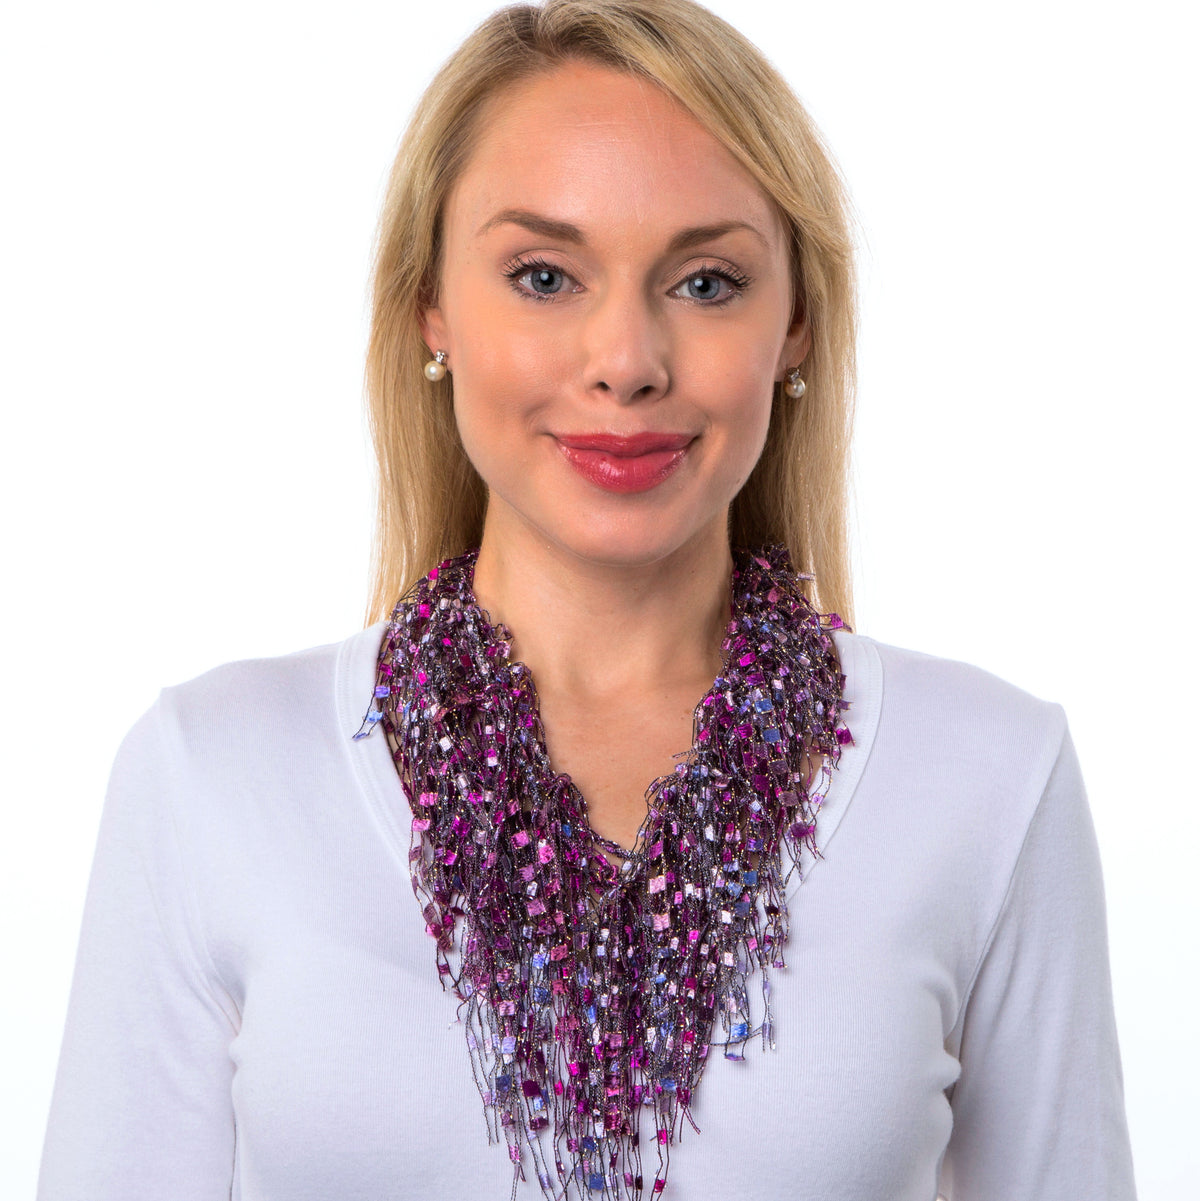 Hot Pink Fuchsia Infinity Scarf - Pink Ruby GemLace Scarf